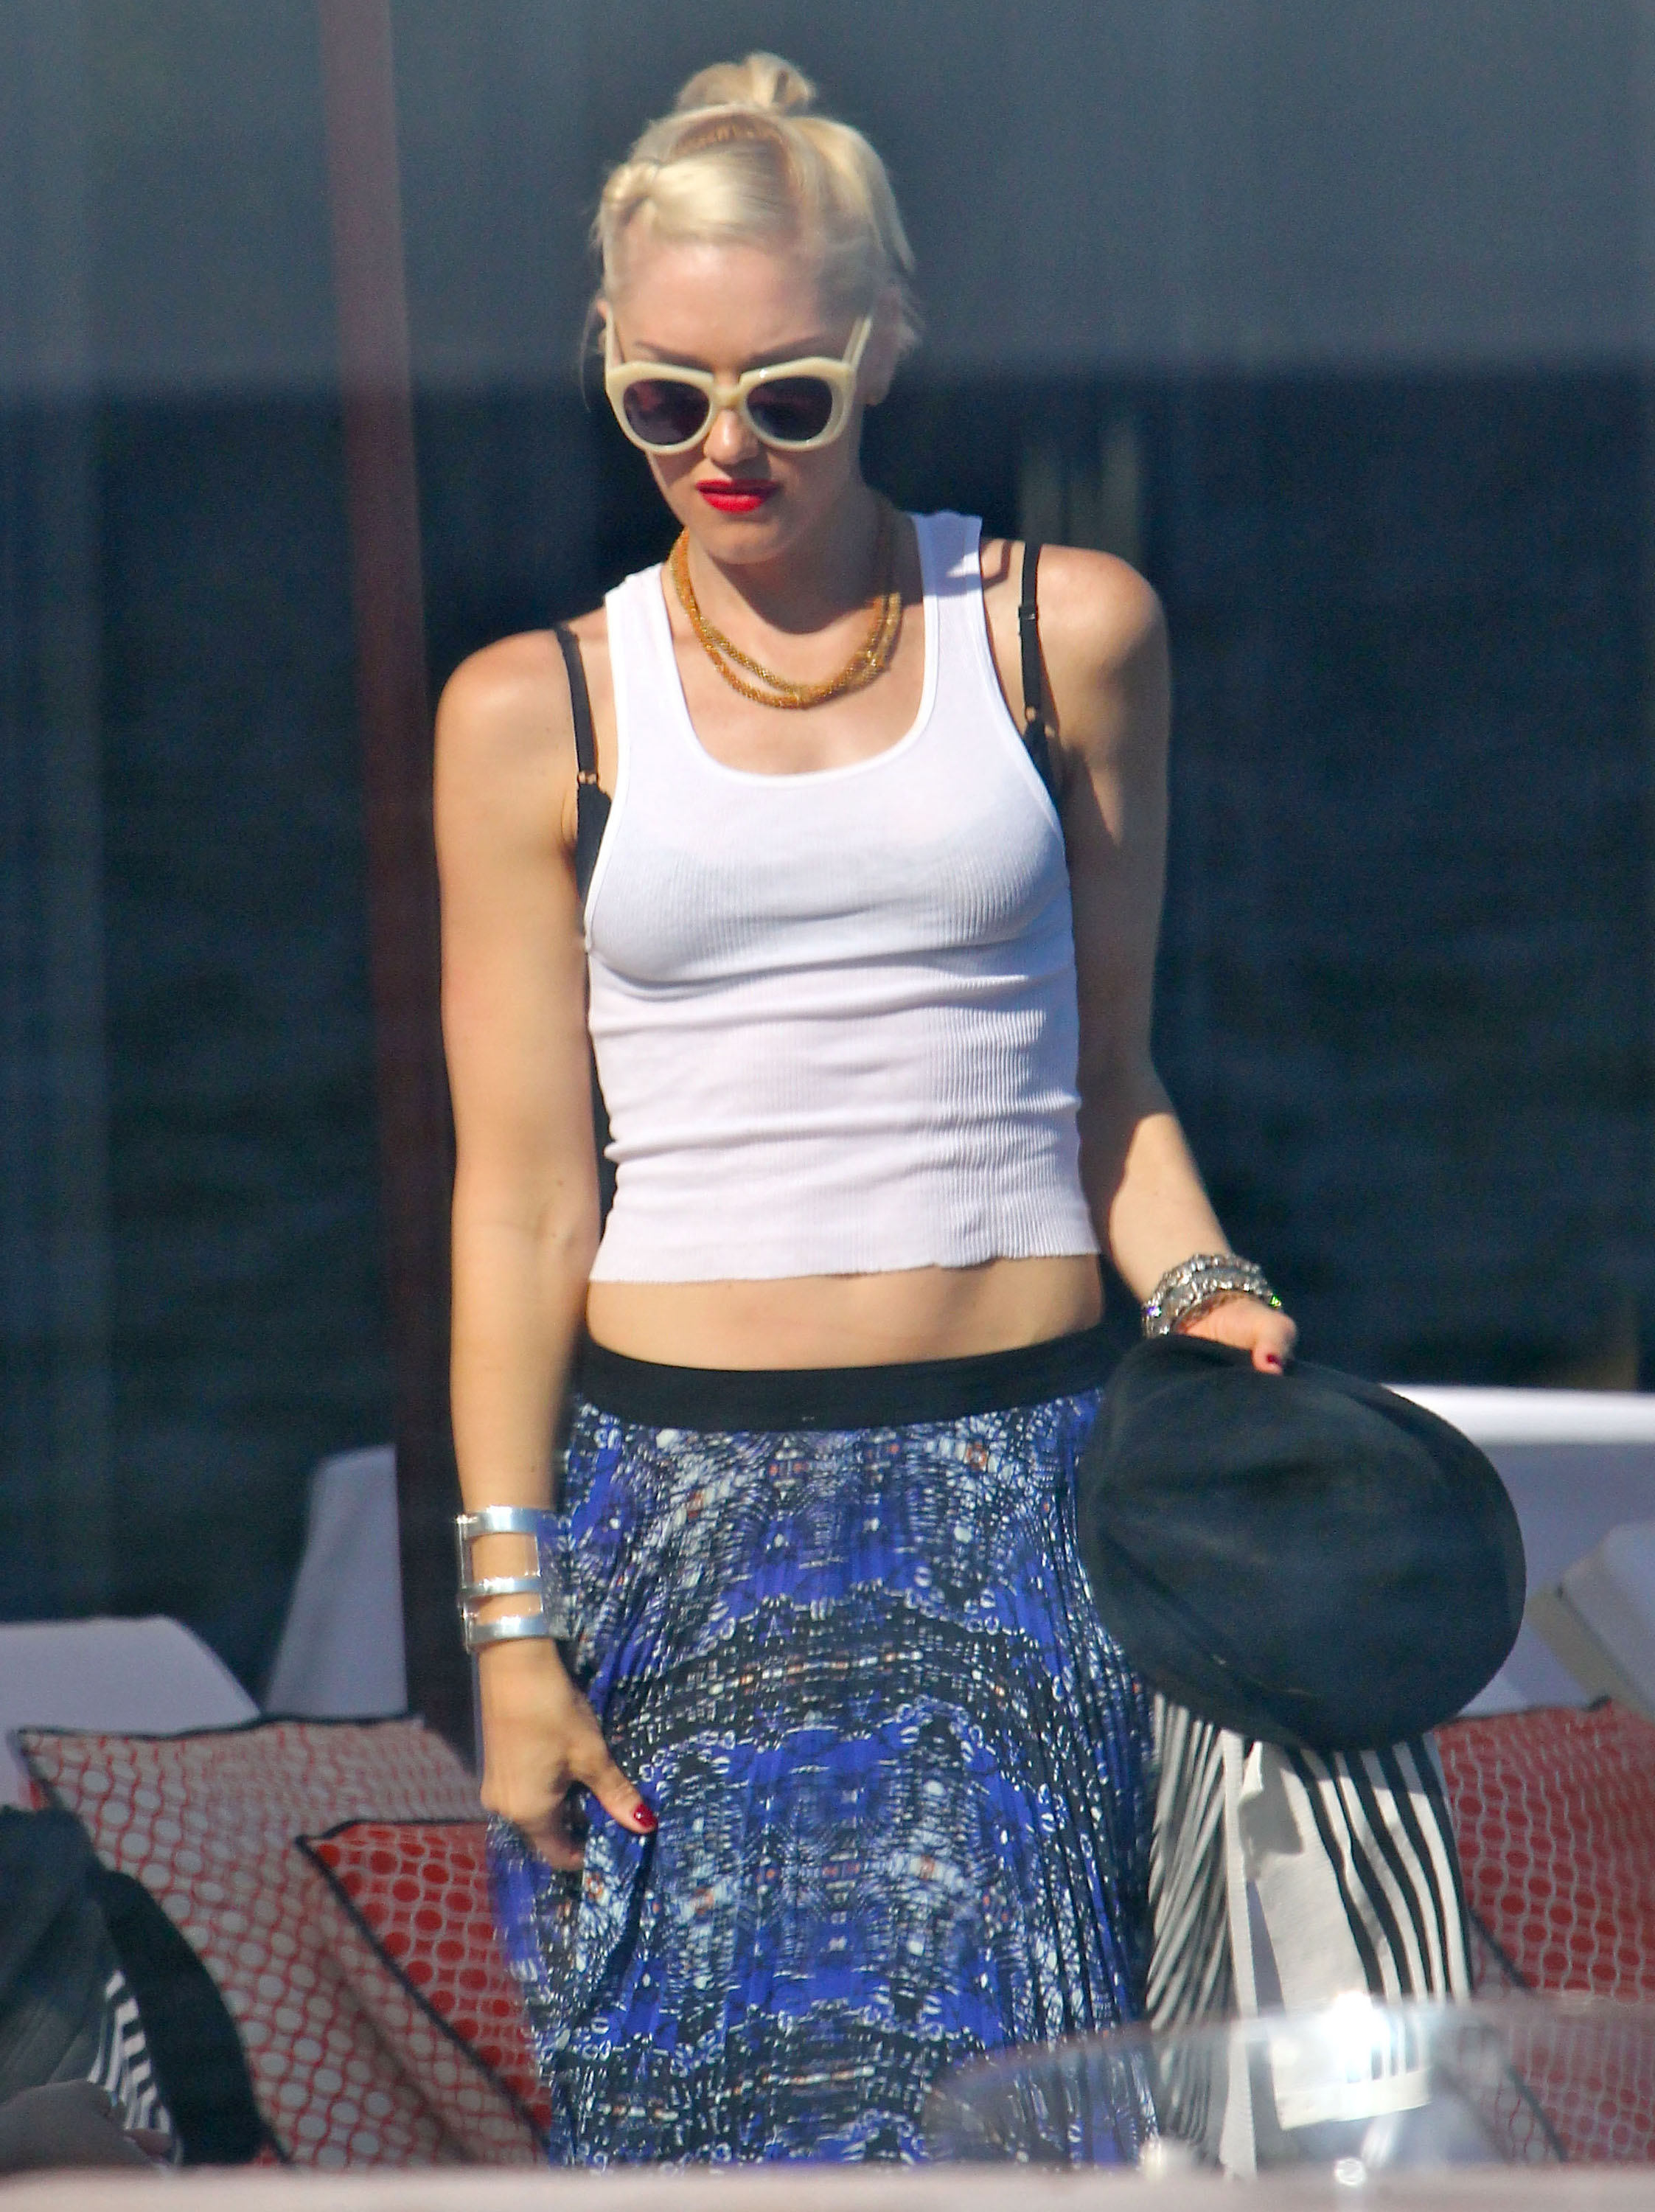 Gwen Stefani hung out by the pool at a Memorial Day party at Joel Silver's house in LA.